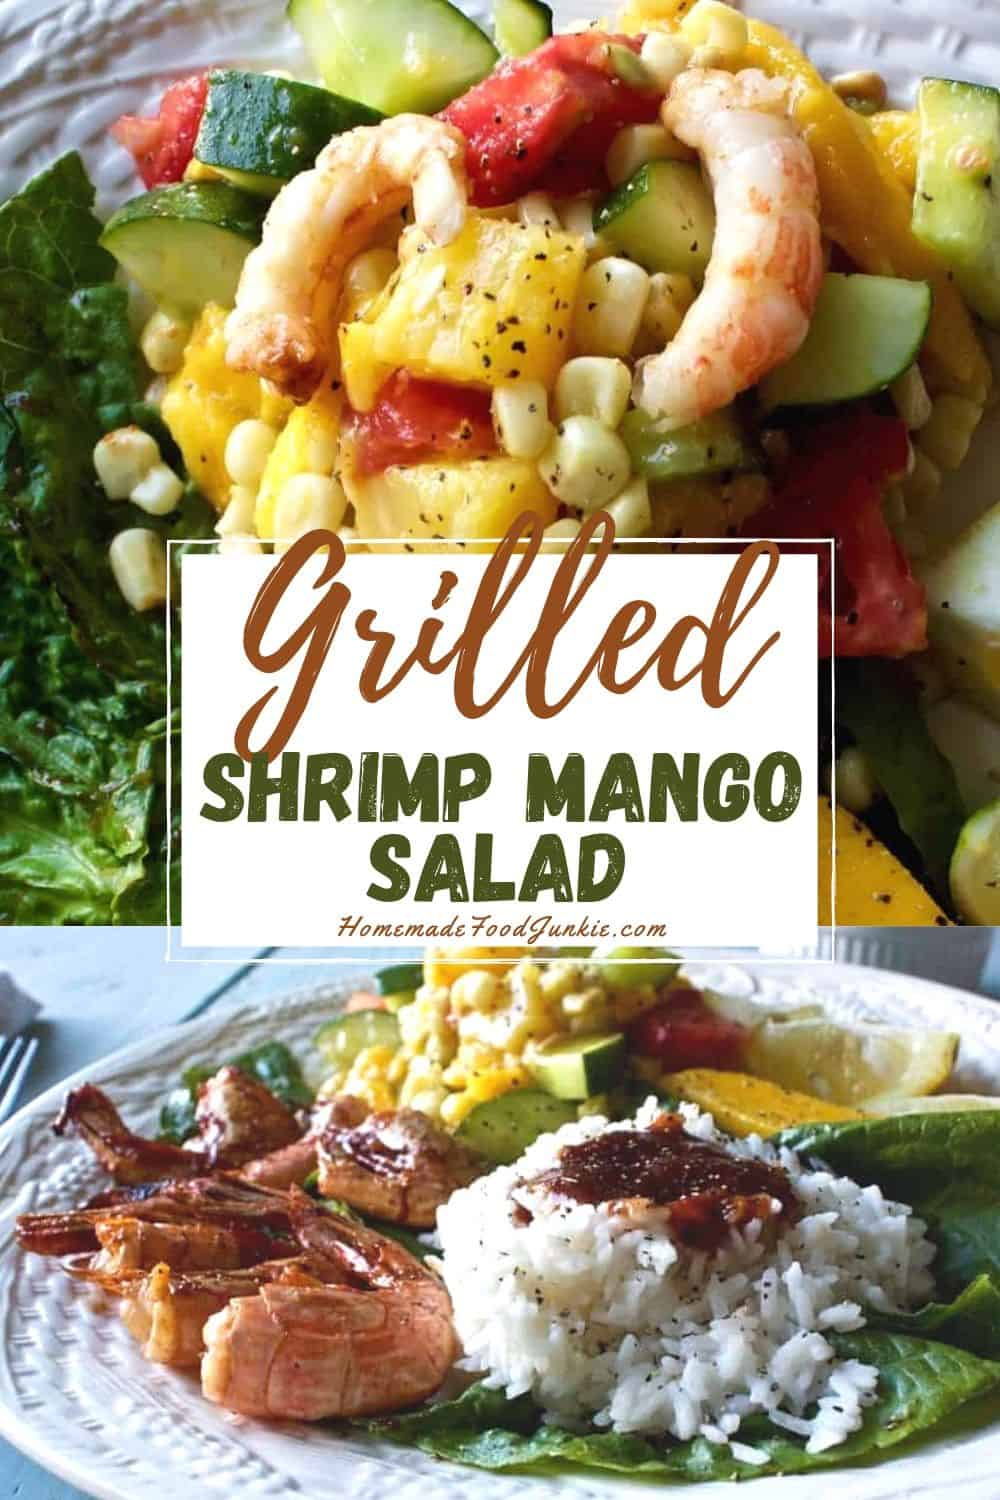 Grilled shrimp mango salad-pin image